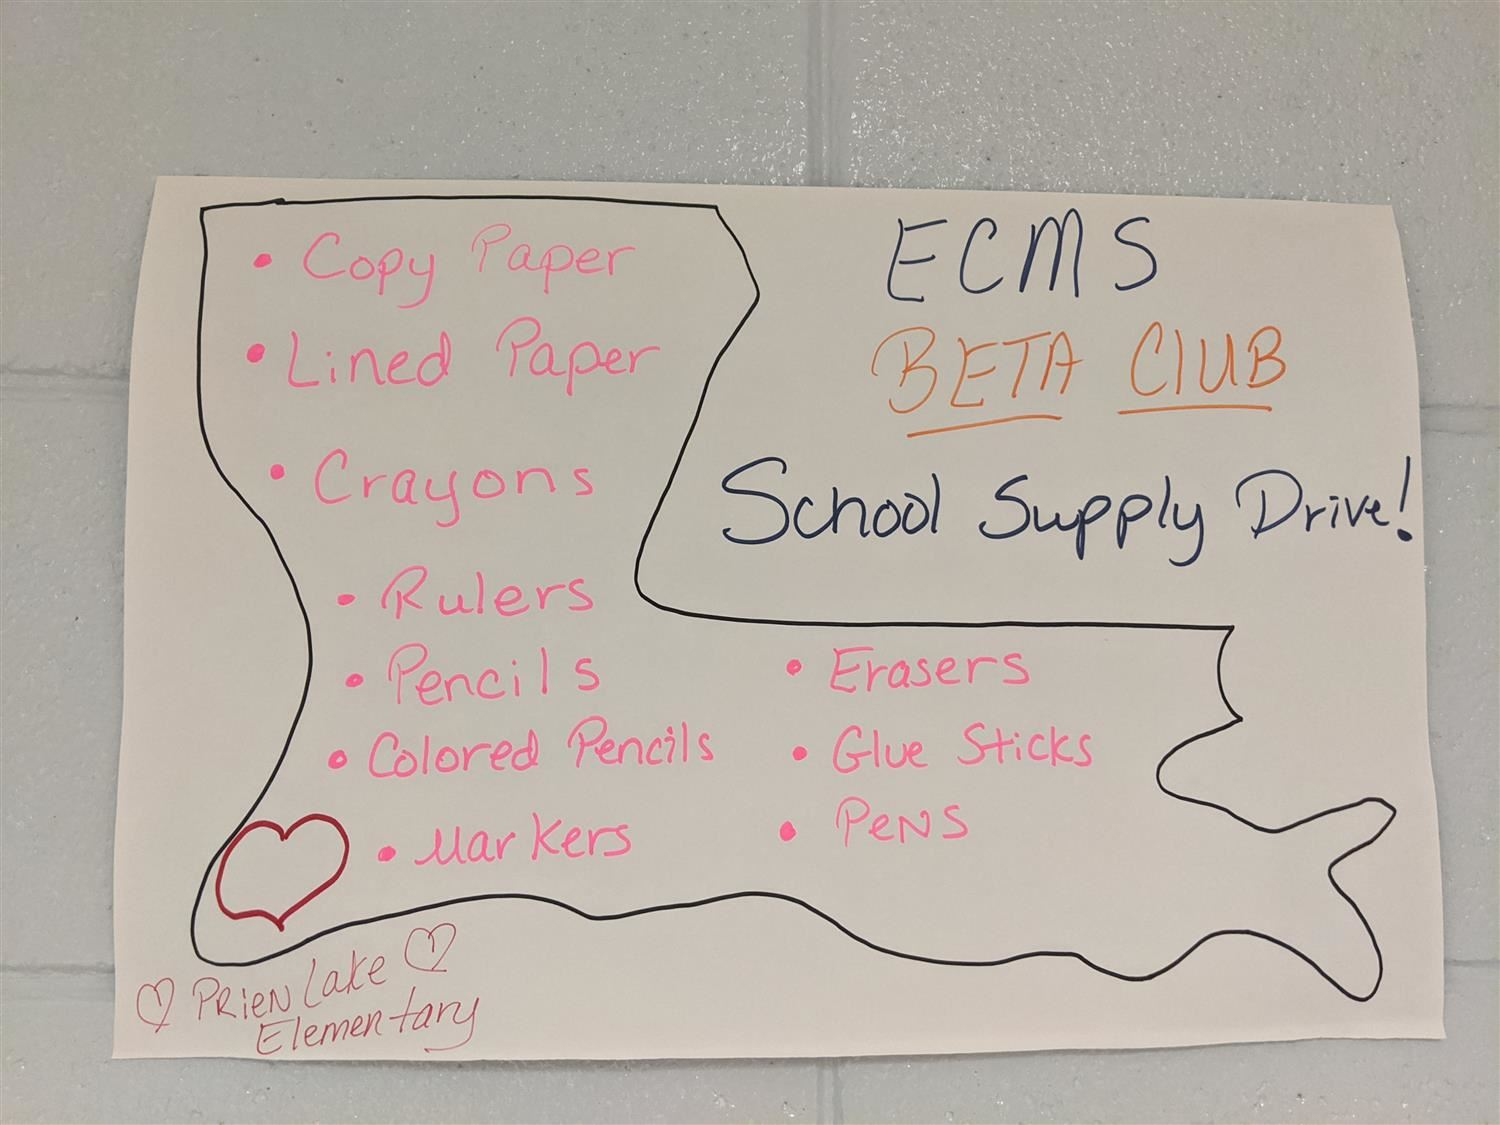 We would like to express our gratitude to Elbert County Middle School and their BETA Club for sponsoring a school supply drive for Prien Lake! We are so grateful for your donations and delivery!